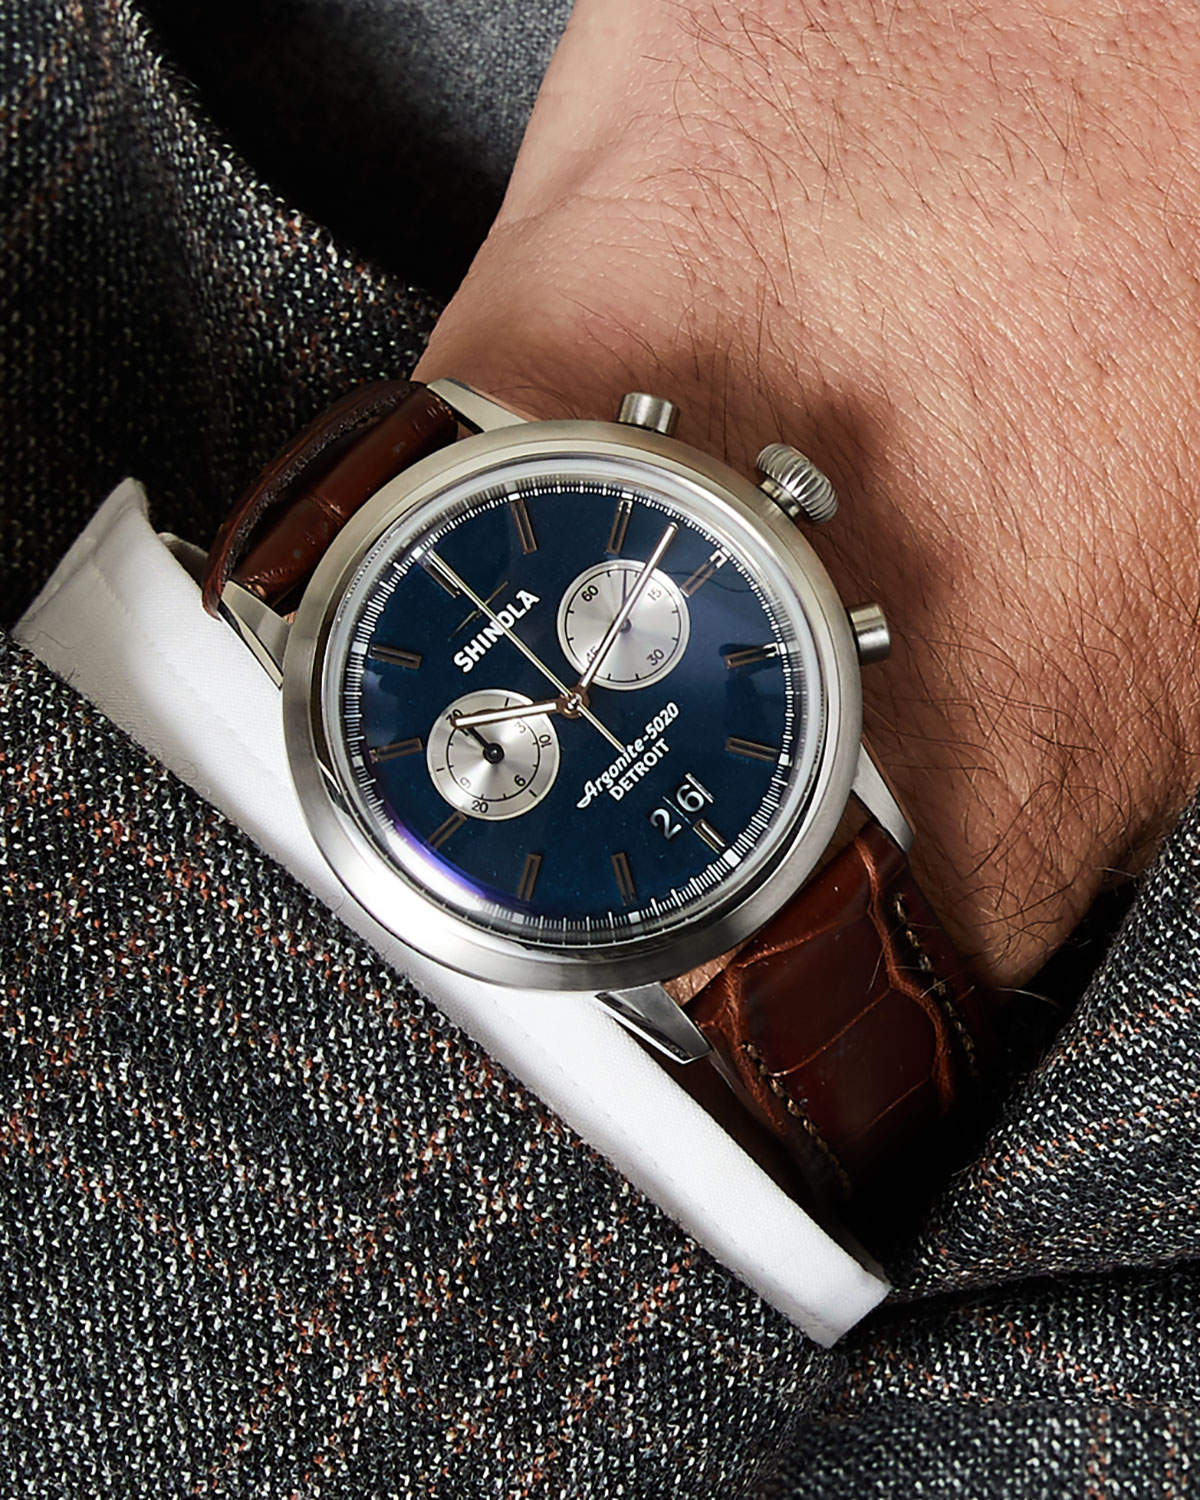 b4a8f2d2d Shinola Great Americans Series: The Jackie Robinson Limited Edition Bedrock  42mm Watch | Neiman Marcus